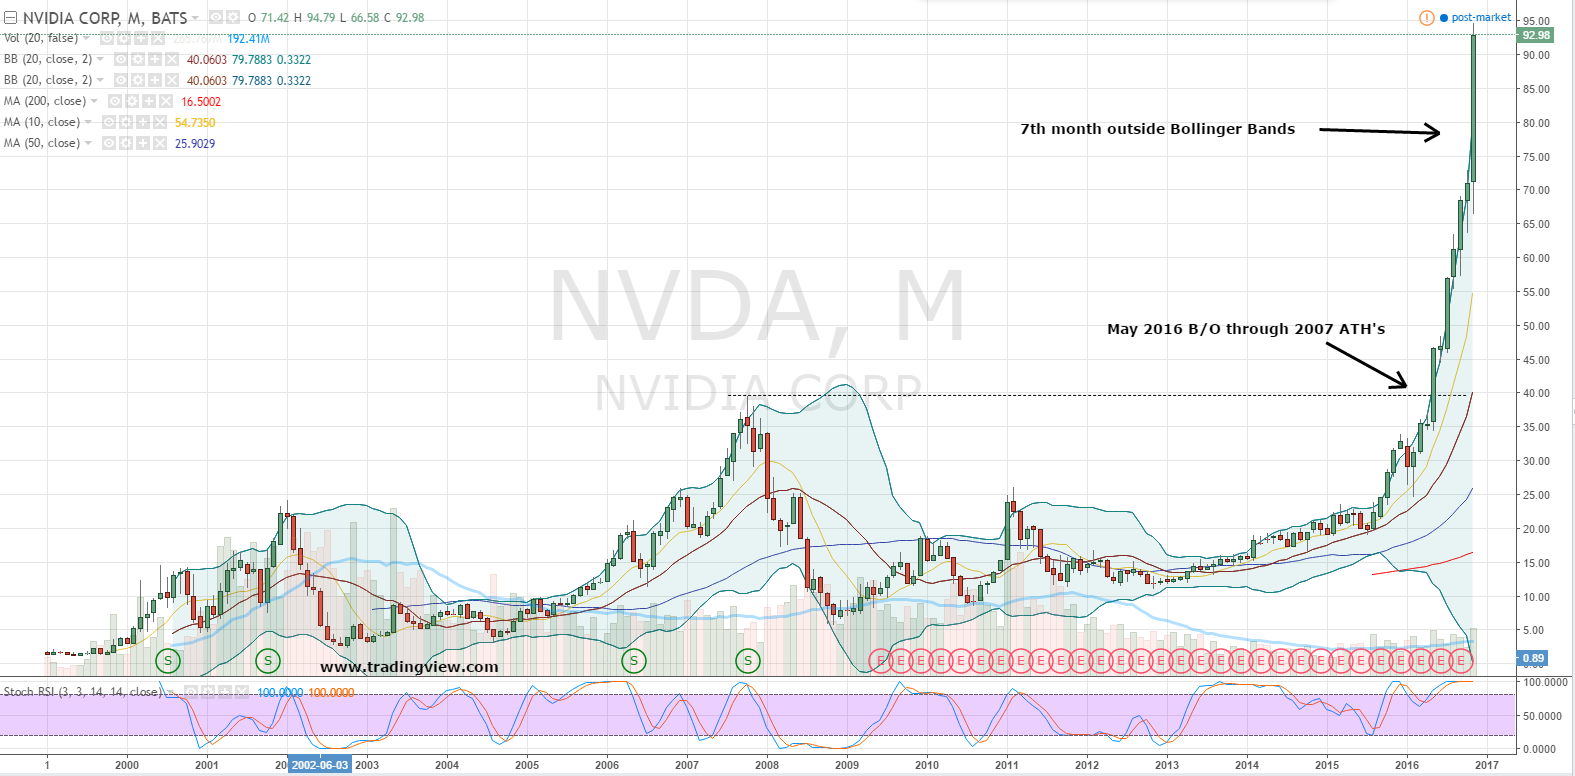 Nvidia Stock Is Expensive By Several Metrics Including A Price To Earnings Ratio Of 35 Growth 1 57 And S